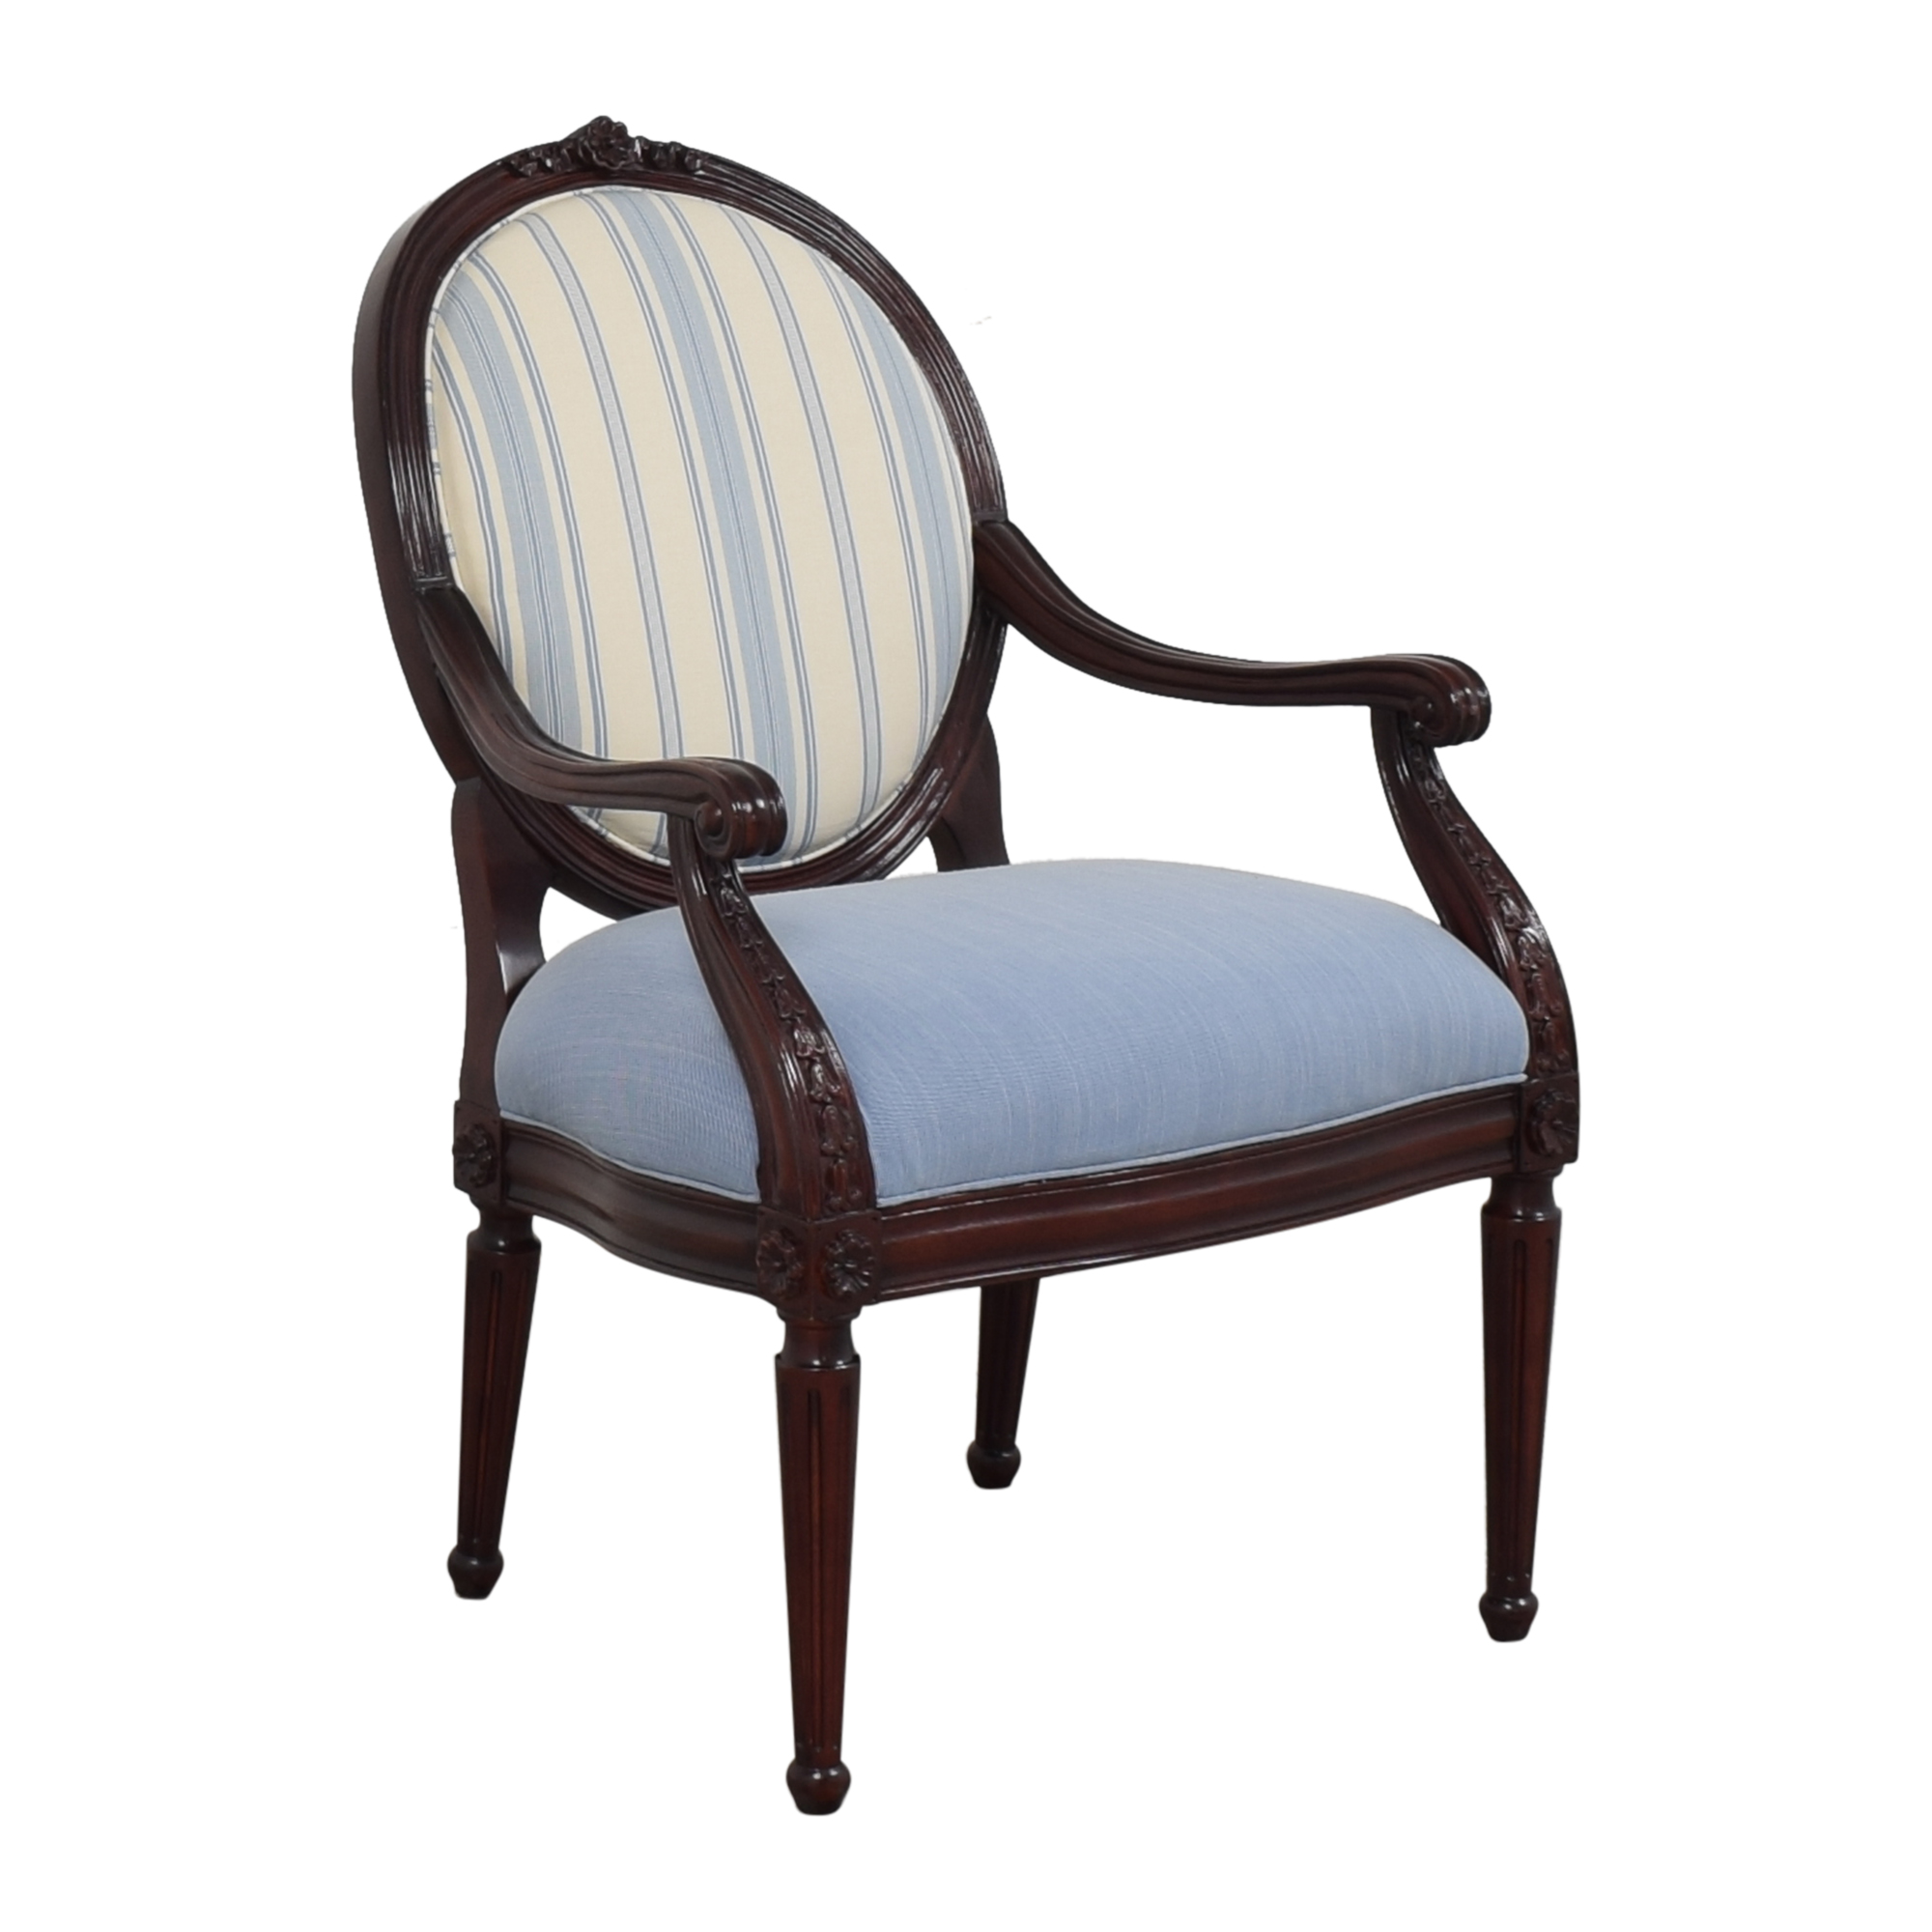 Hancock and Moore Hancock and Moore Circle Back Accent Chair on sale